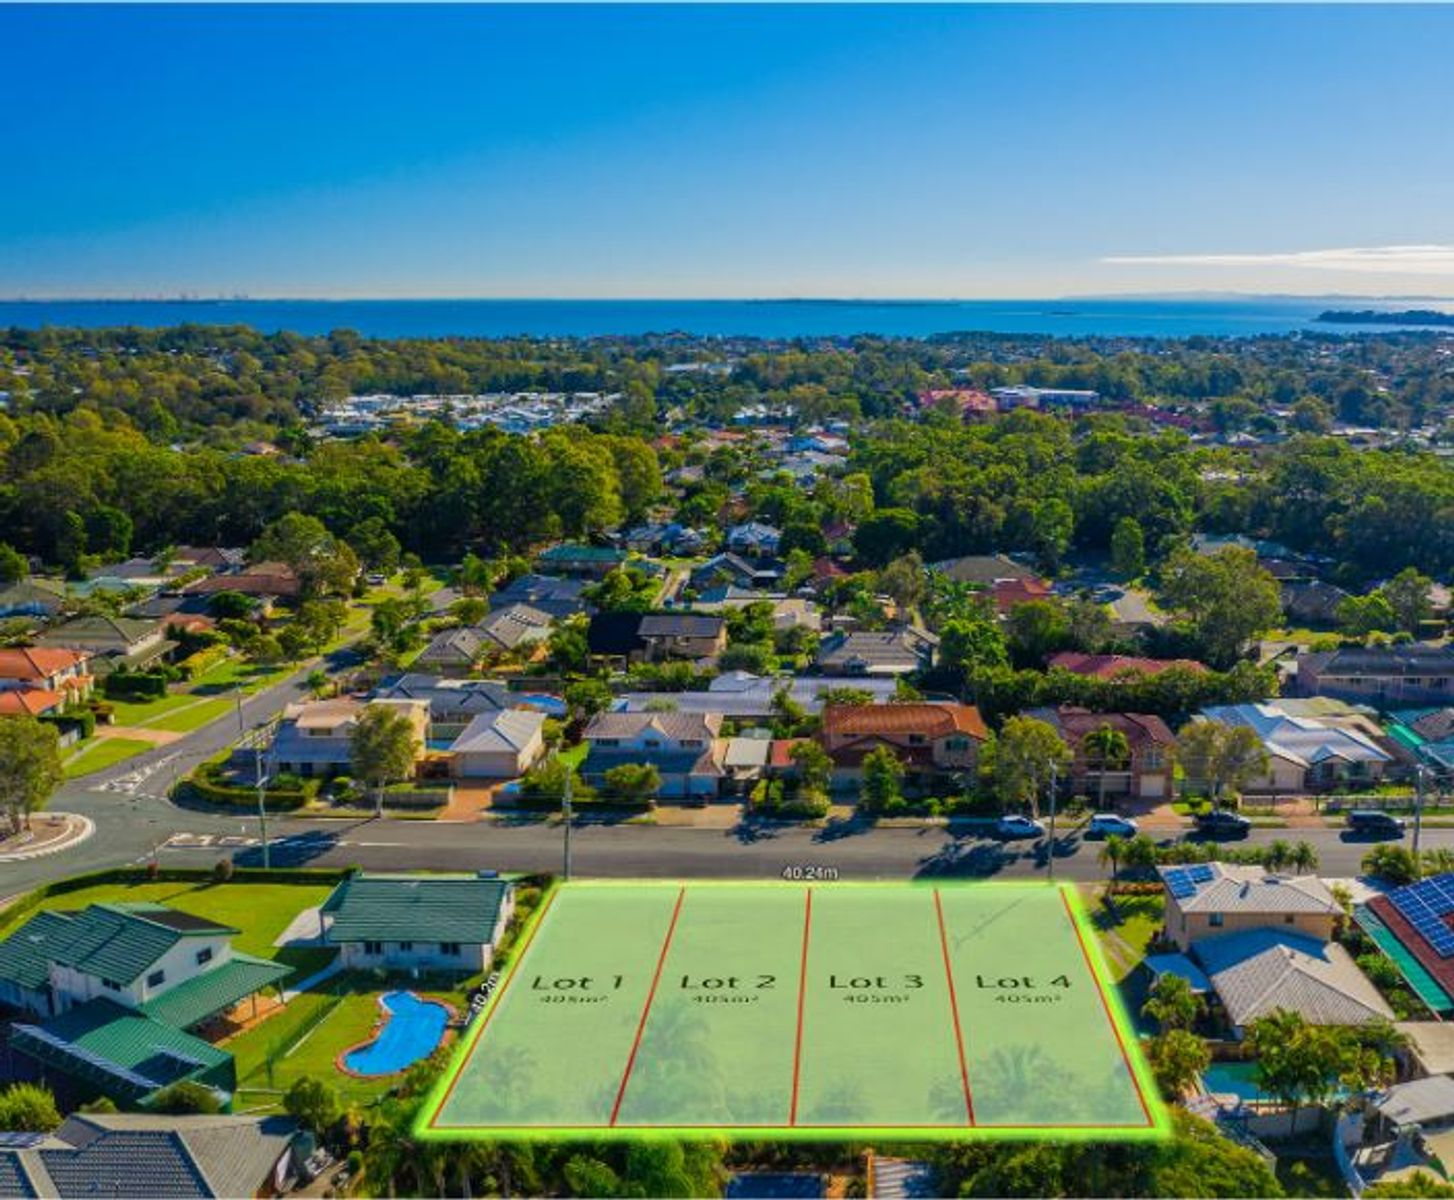 Lot 1 55-57 Burbank Road, Birkdale, QLD 4159